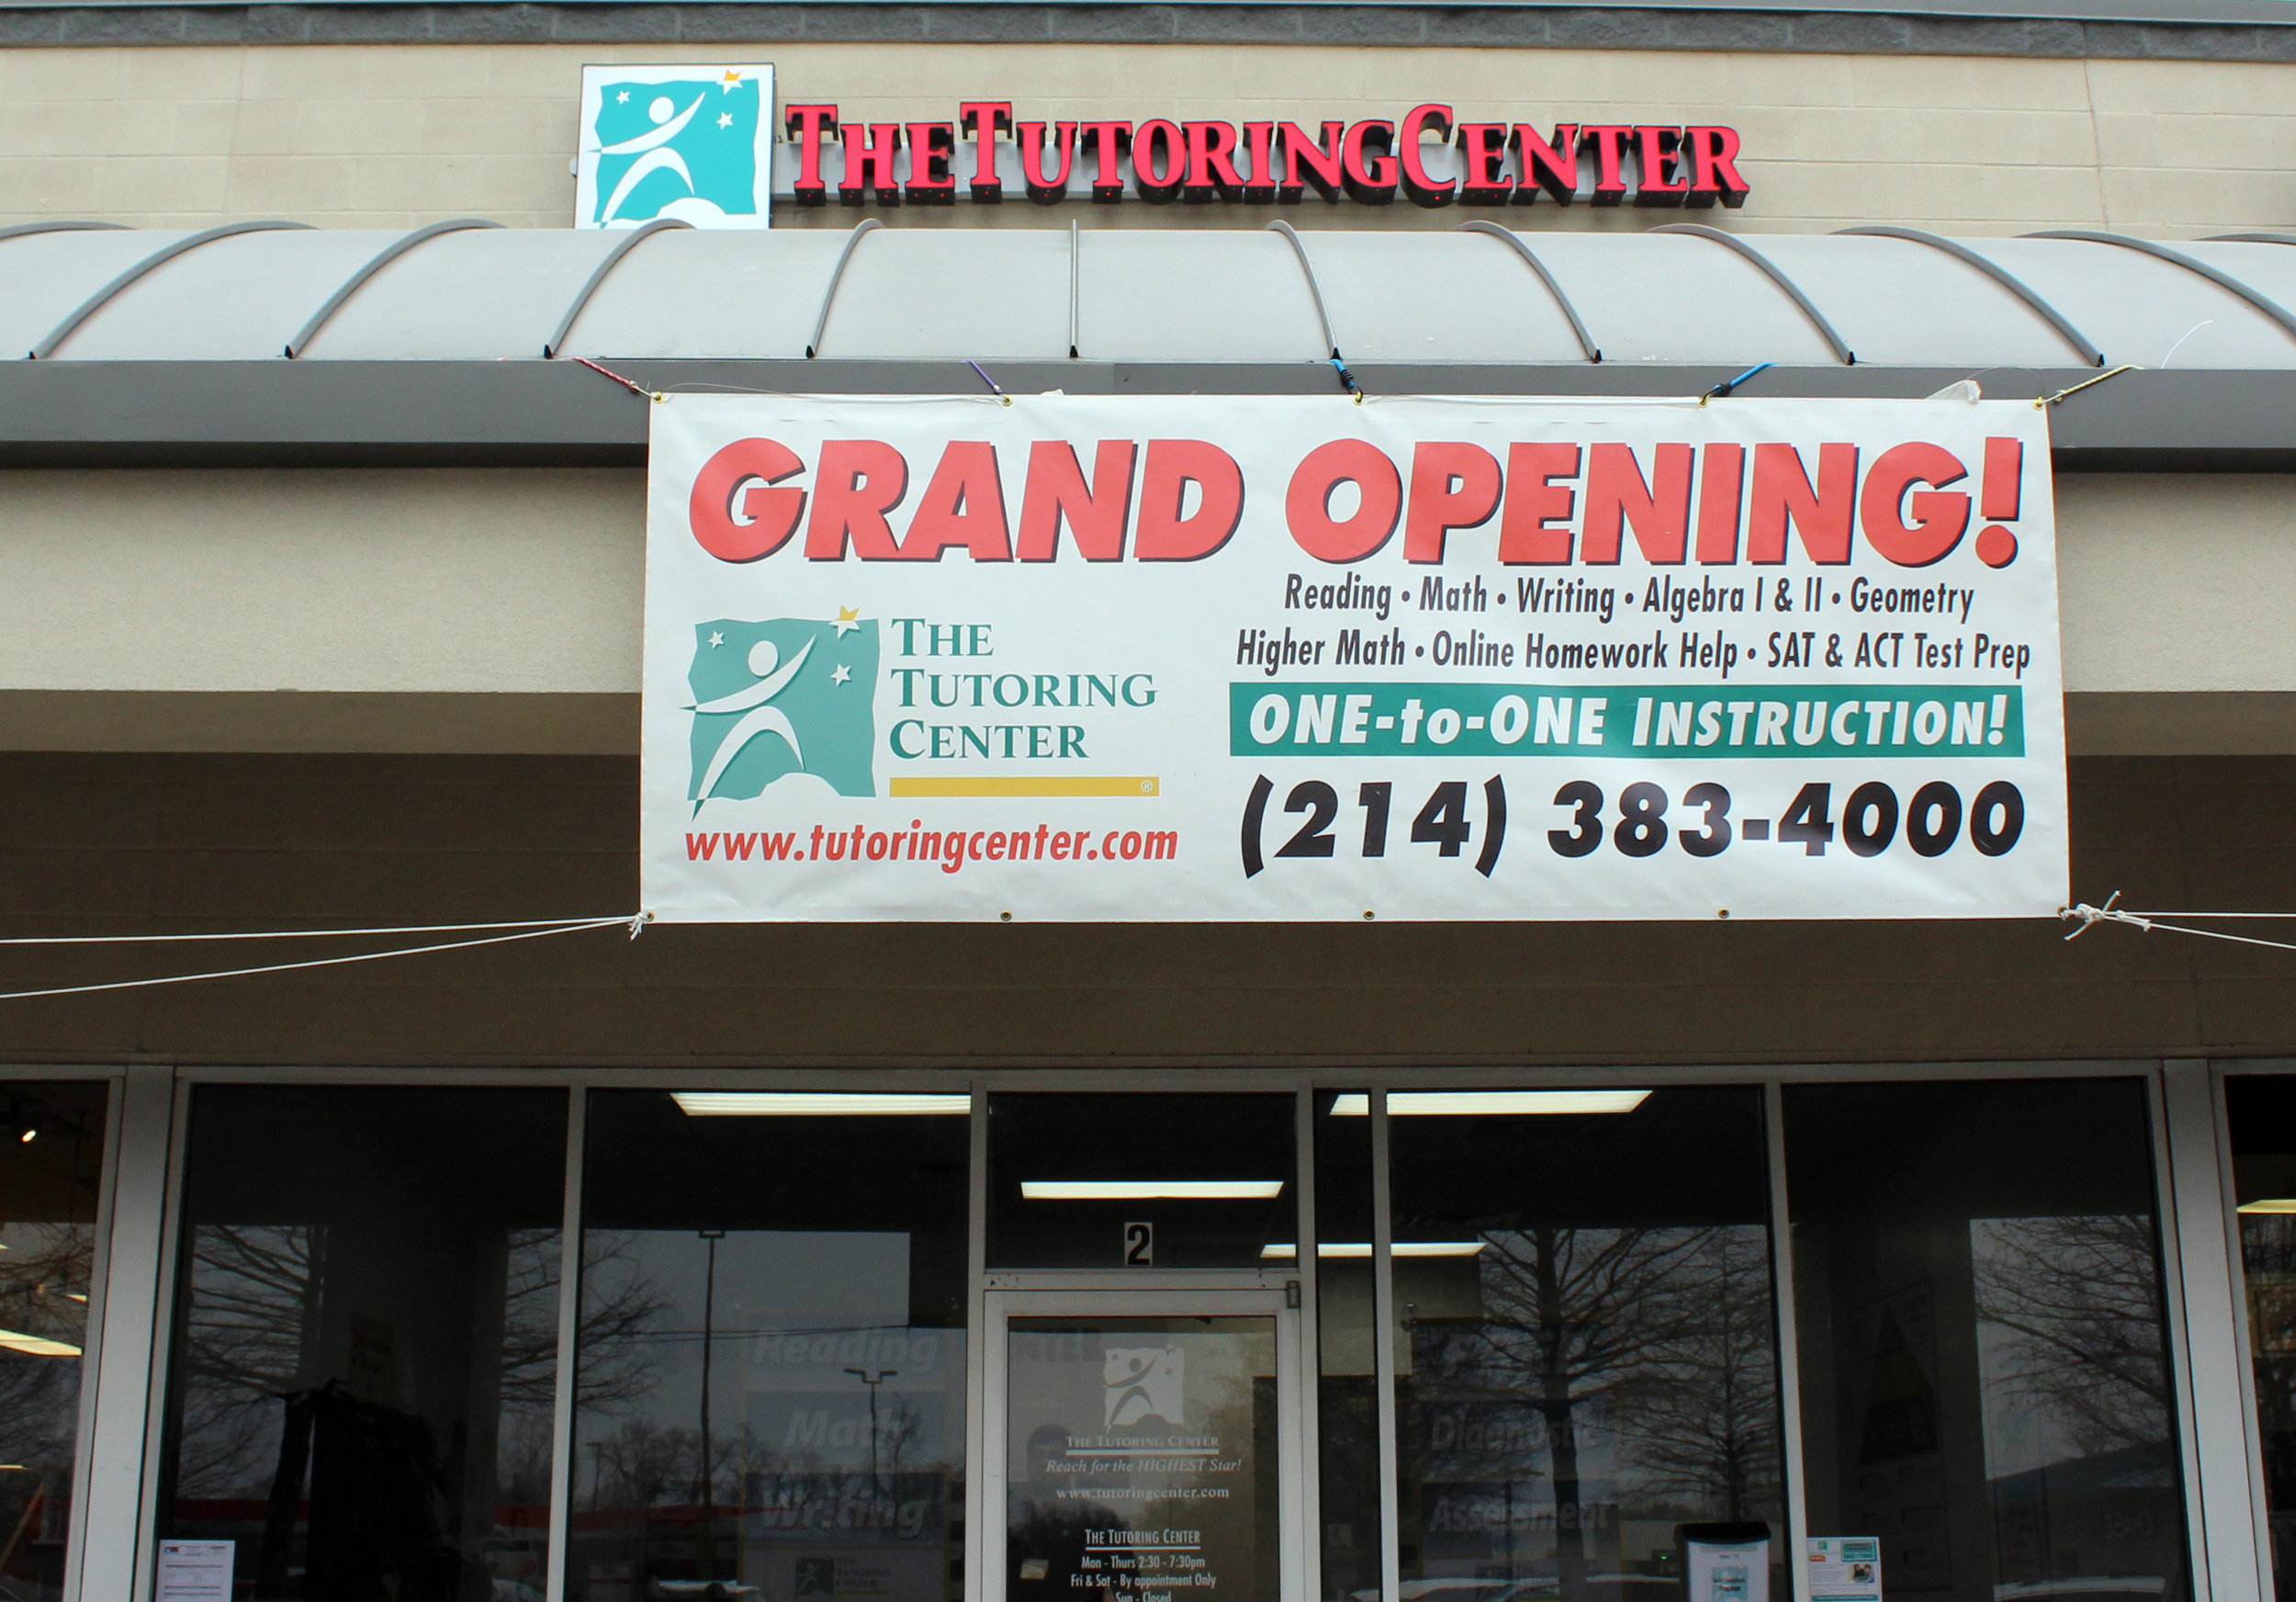 The Tutoring Center, located in Allen, opened on Feb. 25, 2019